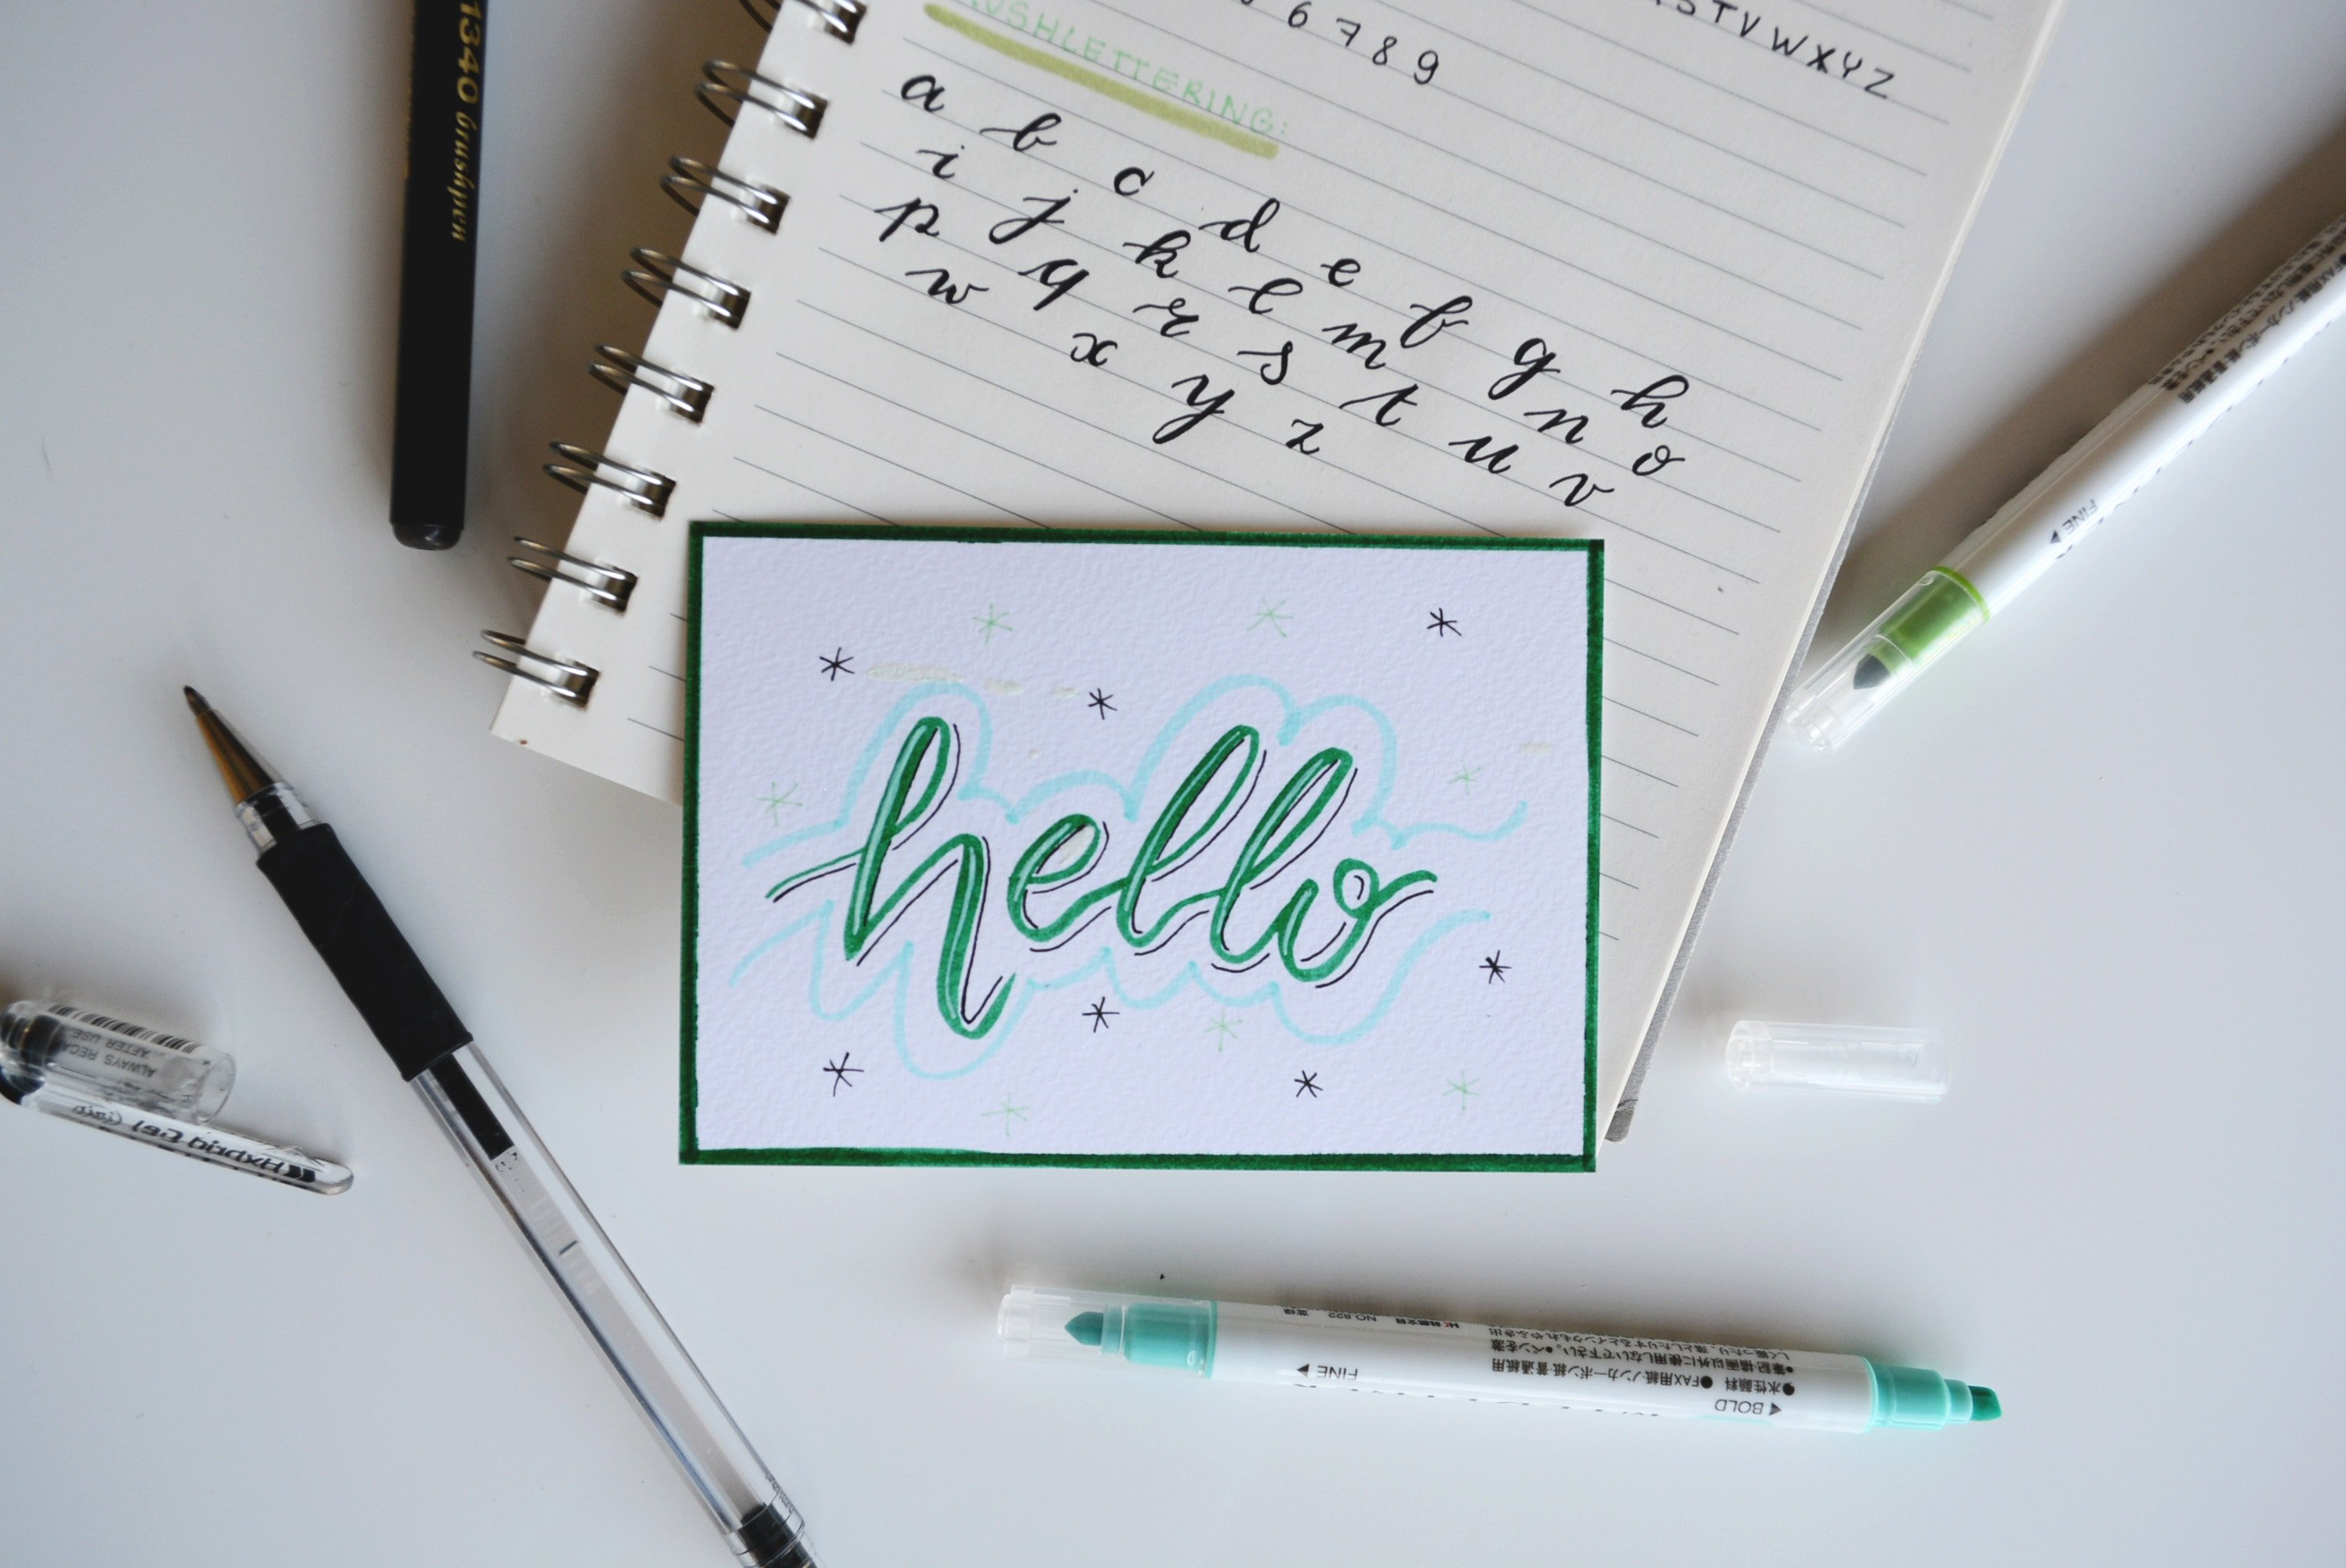 pens and markers along with notepads and a card saying hello